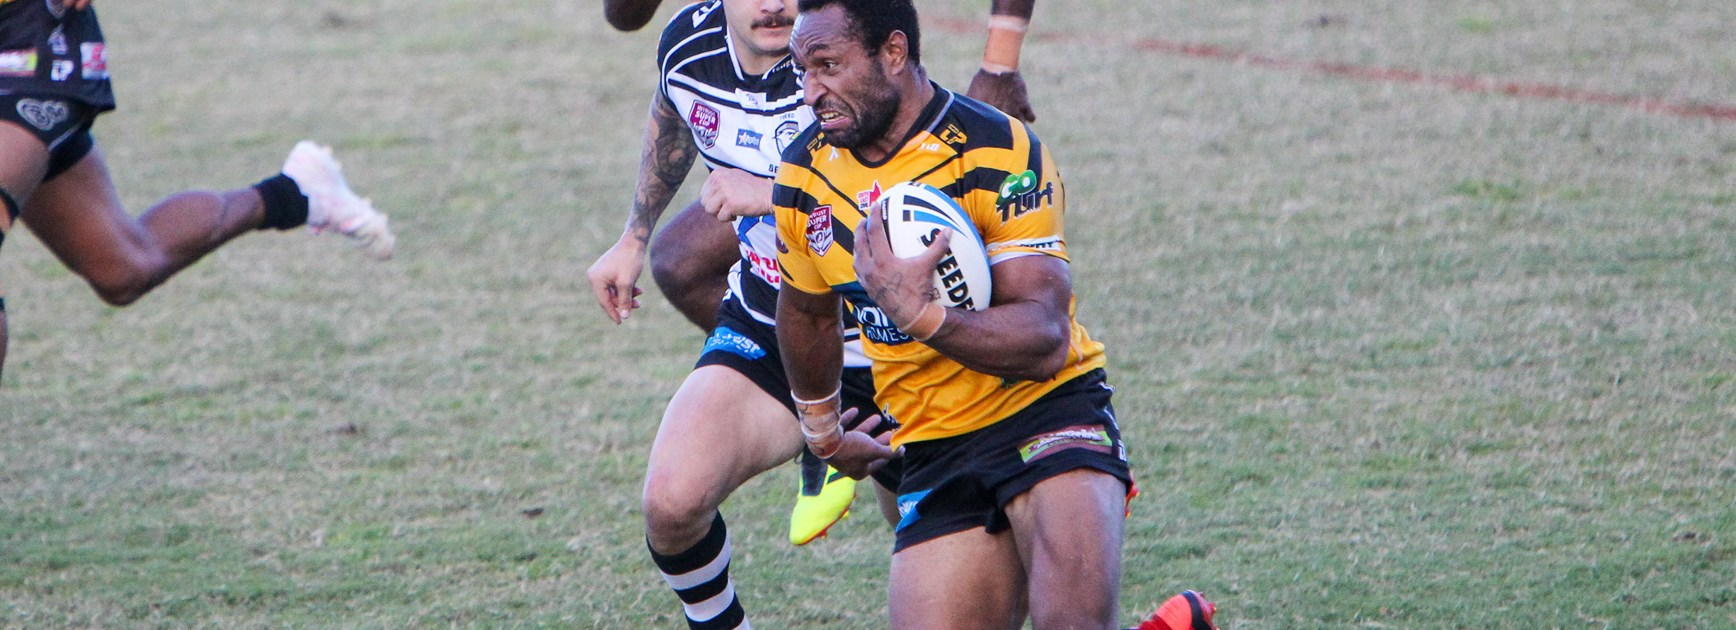 Olam gets hat-trick in Falcons win over Tweed